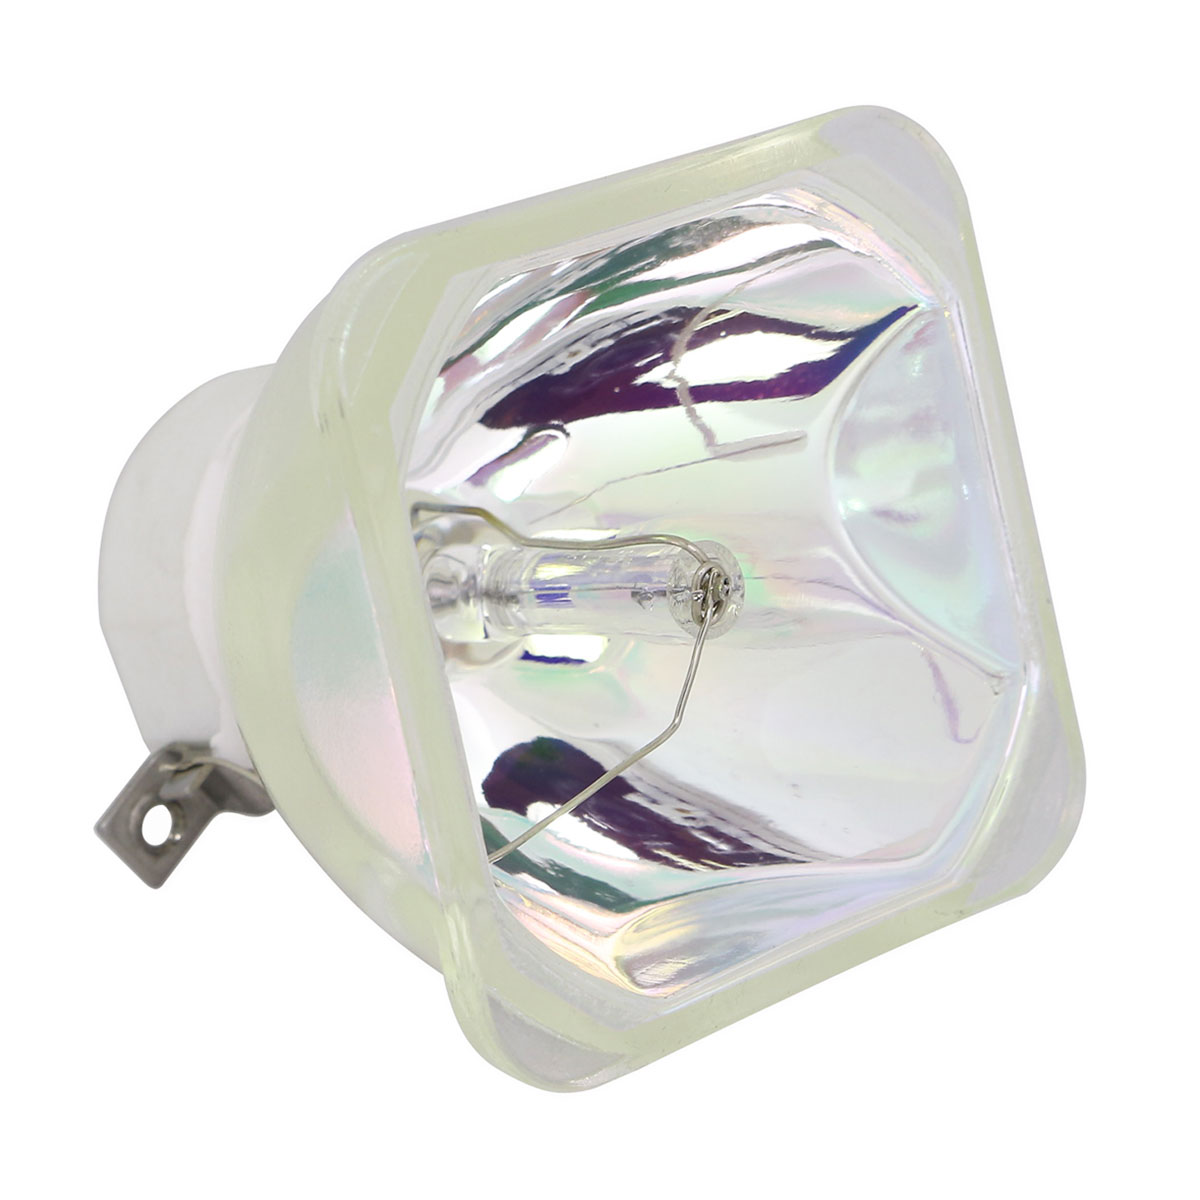 Lutema Economy Bulb for NEC NP-M271WJL Projector (Lamp with Housing) - image 3 de 5